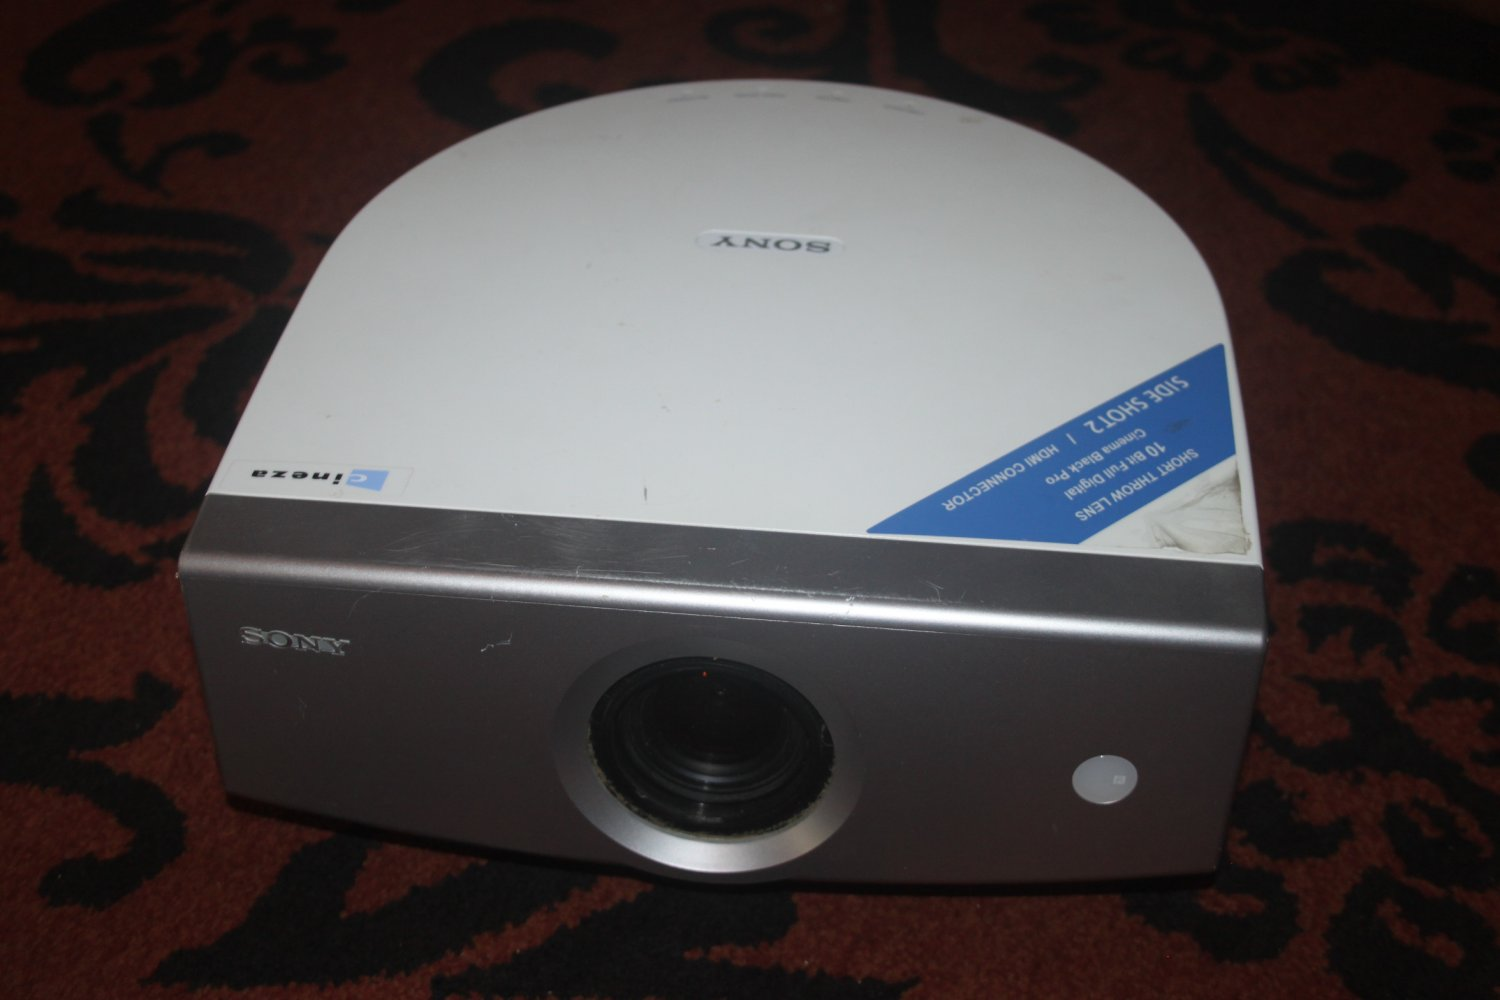 Sony VPL-HS3 LCD Projector-MAIN UNIT ONLY-NEEDS BULB-AS PICTURED 5/16